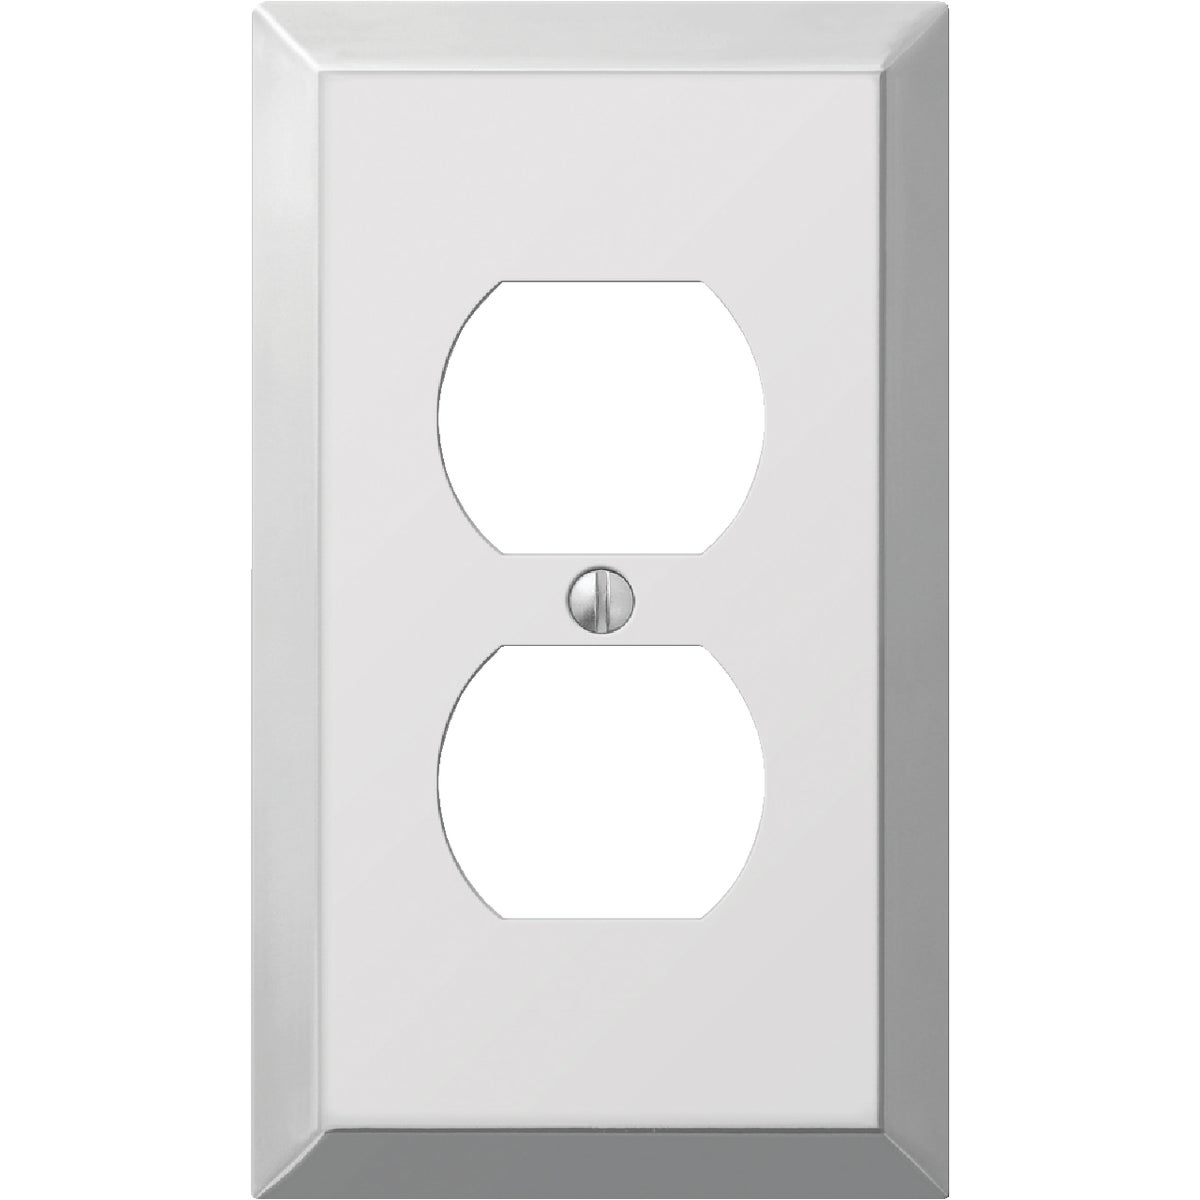 CHR OUTLET WALL PLATE - 9CS108 by Jackson Deerfield Mf